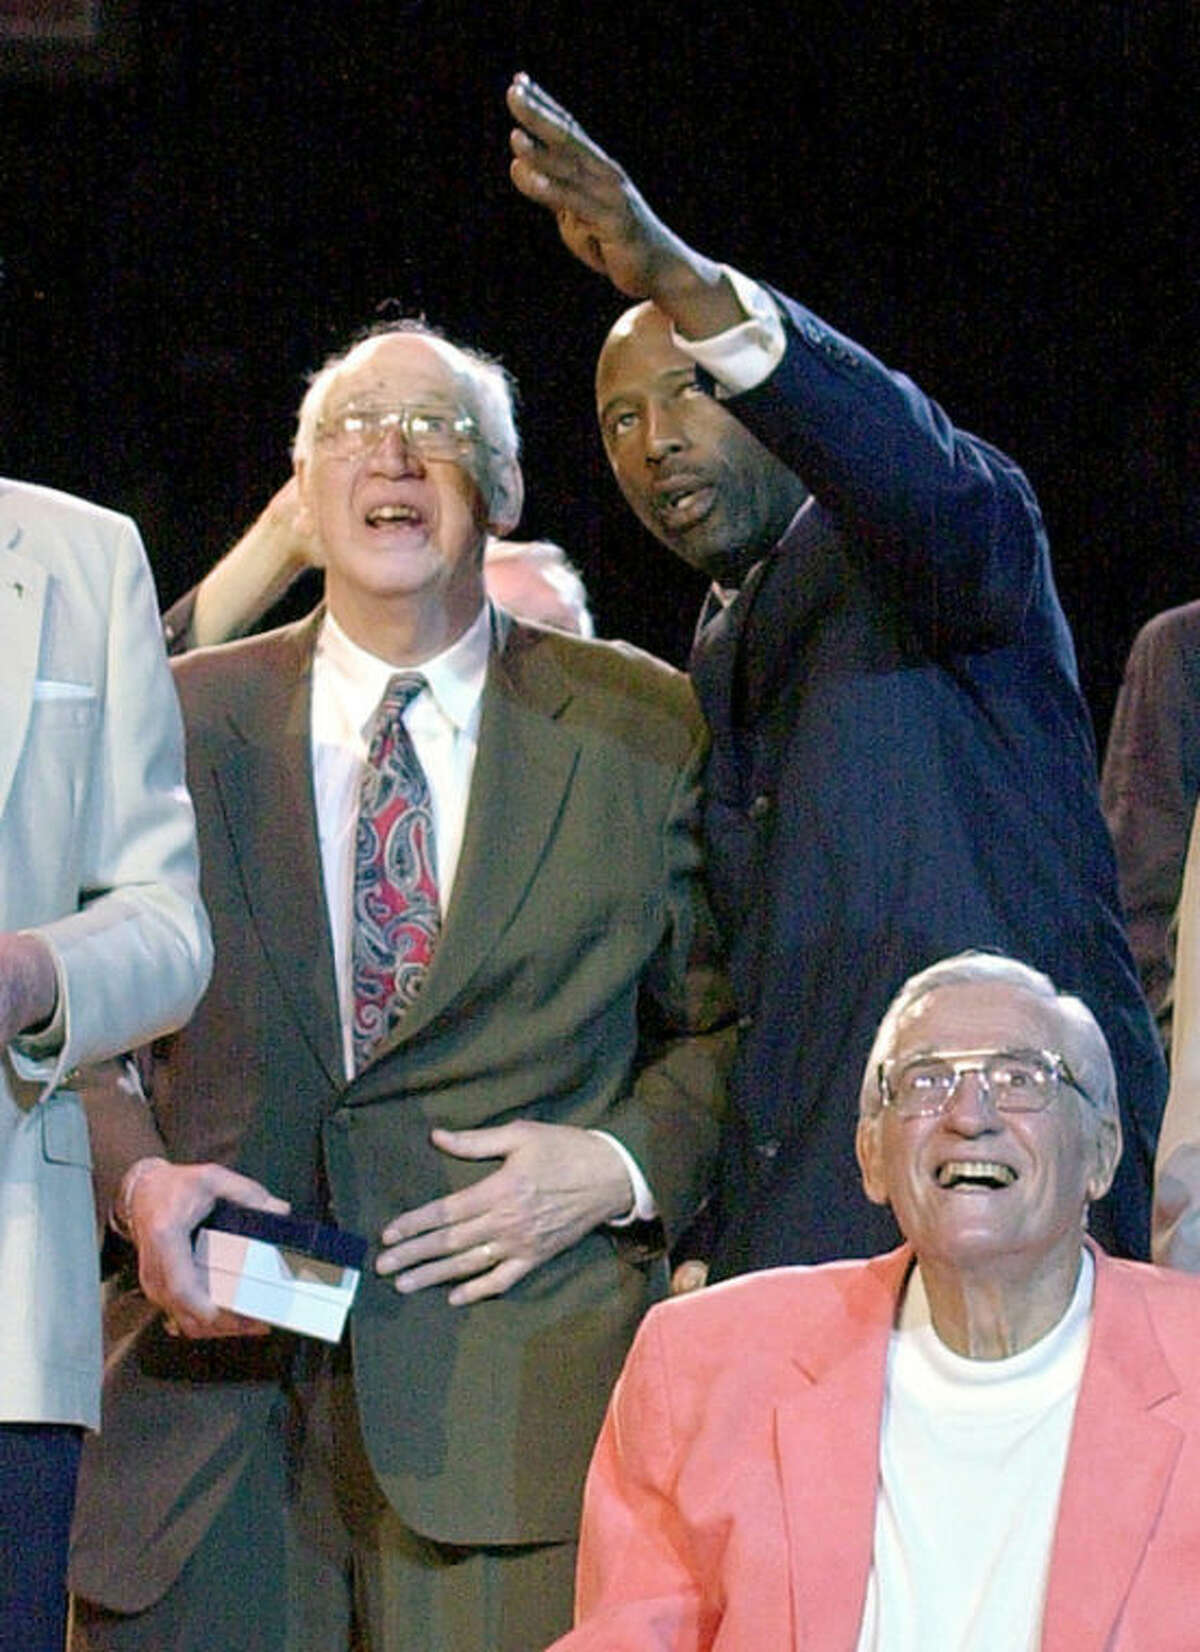 FILE - In this April 11, 2002, file photo, Minneapolis Lakers greats Vern Mikkelsen, left, and George Mikan, lower right, look up at banners honoring the team for winning five NBA titles in six years as former Los Angeles Lakers player James Worthy points during a halftime ceremony at an NBA basketball game in Los Angeles. Mikkelsen, a Hall of Fame basketball player who won four NBA titles with the Lakers, has died. He was 85. The Lakers say Mikkelsen died Thursday, Nov. 21, 2013. (AP Photo/Mark J. Terrill, File)